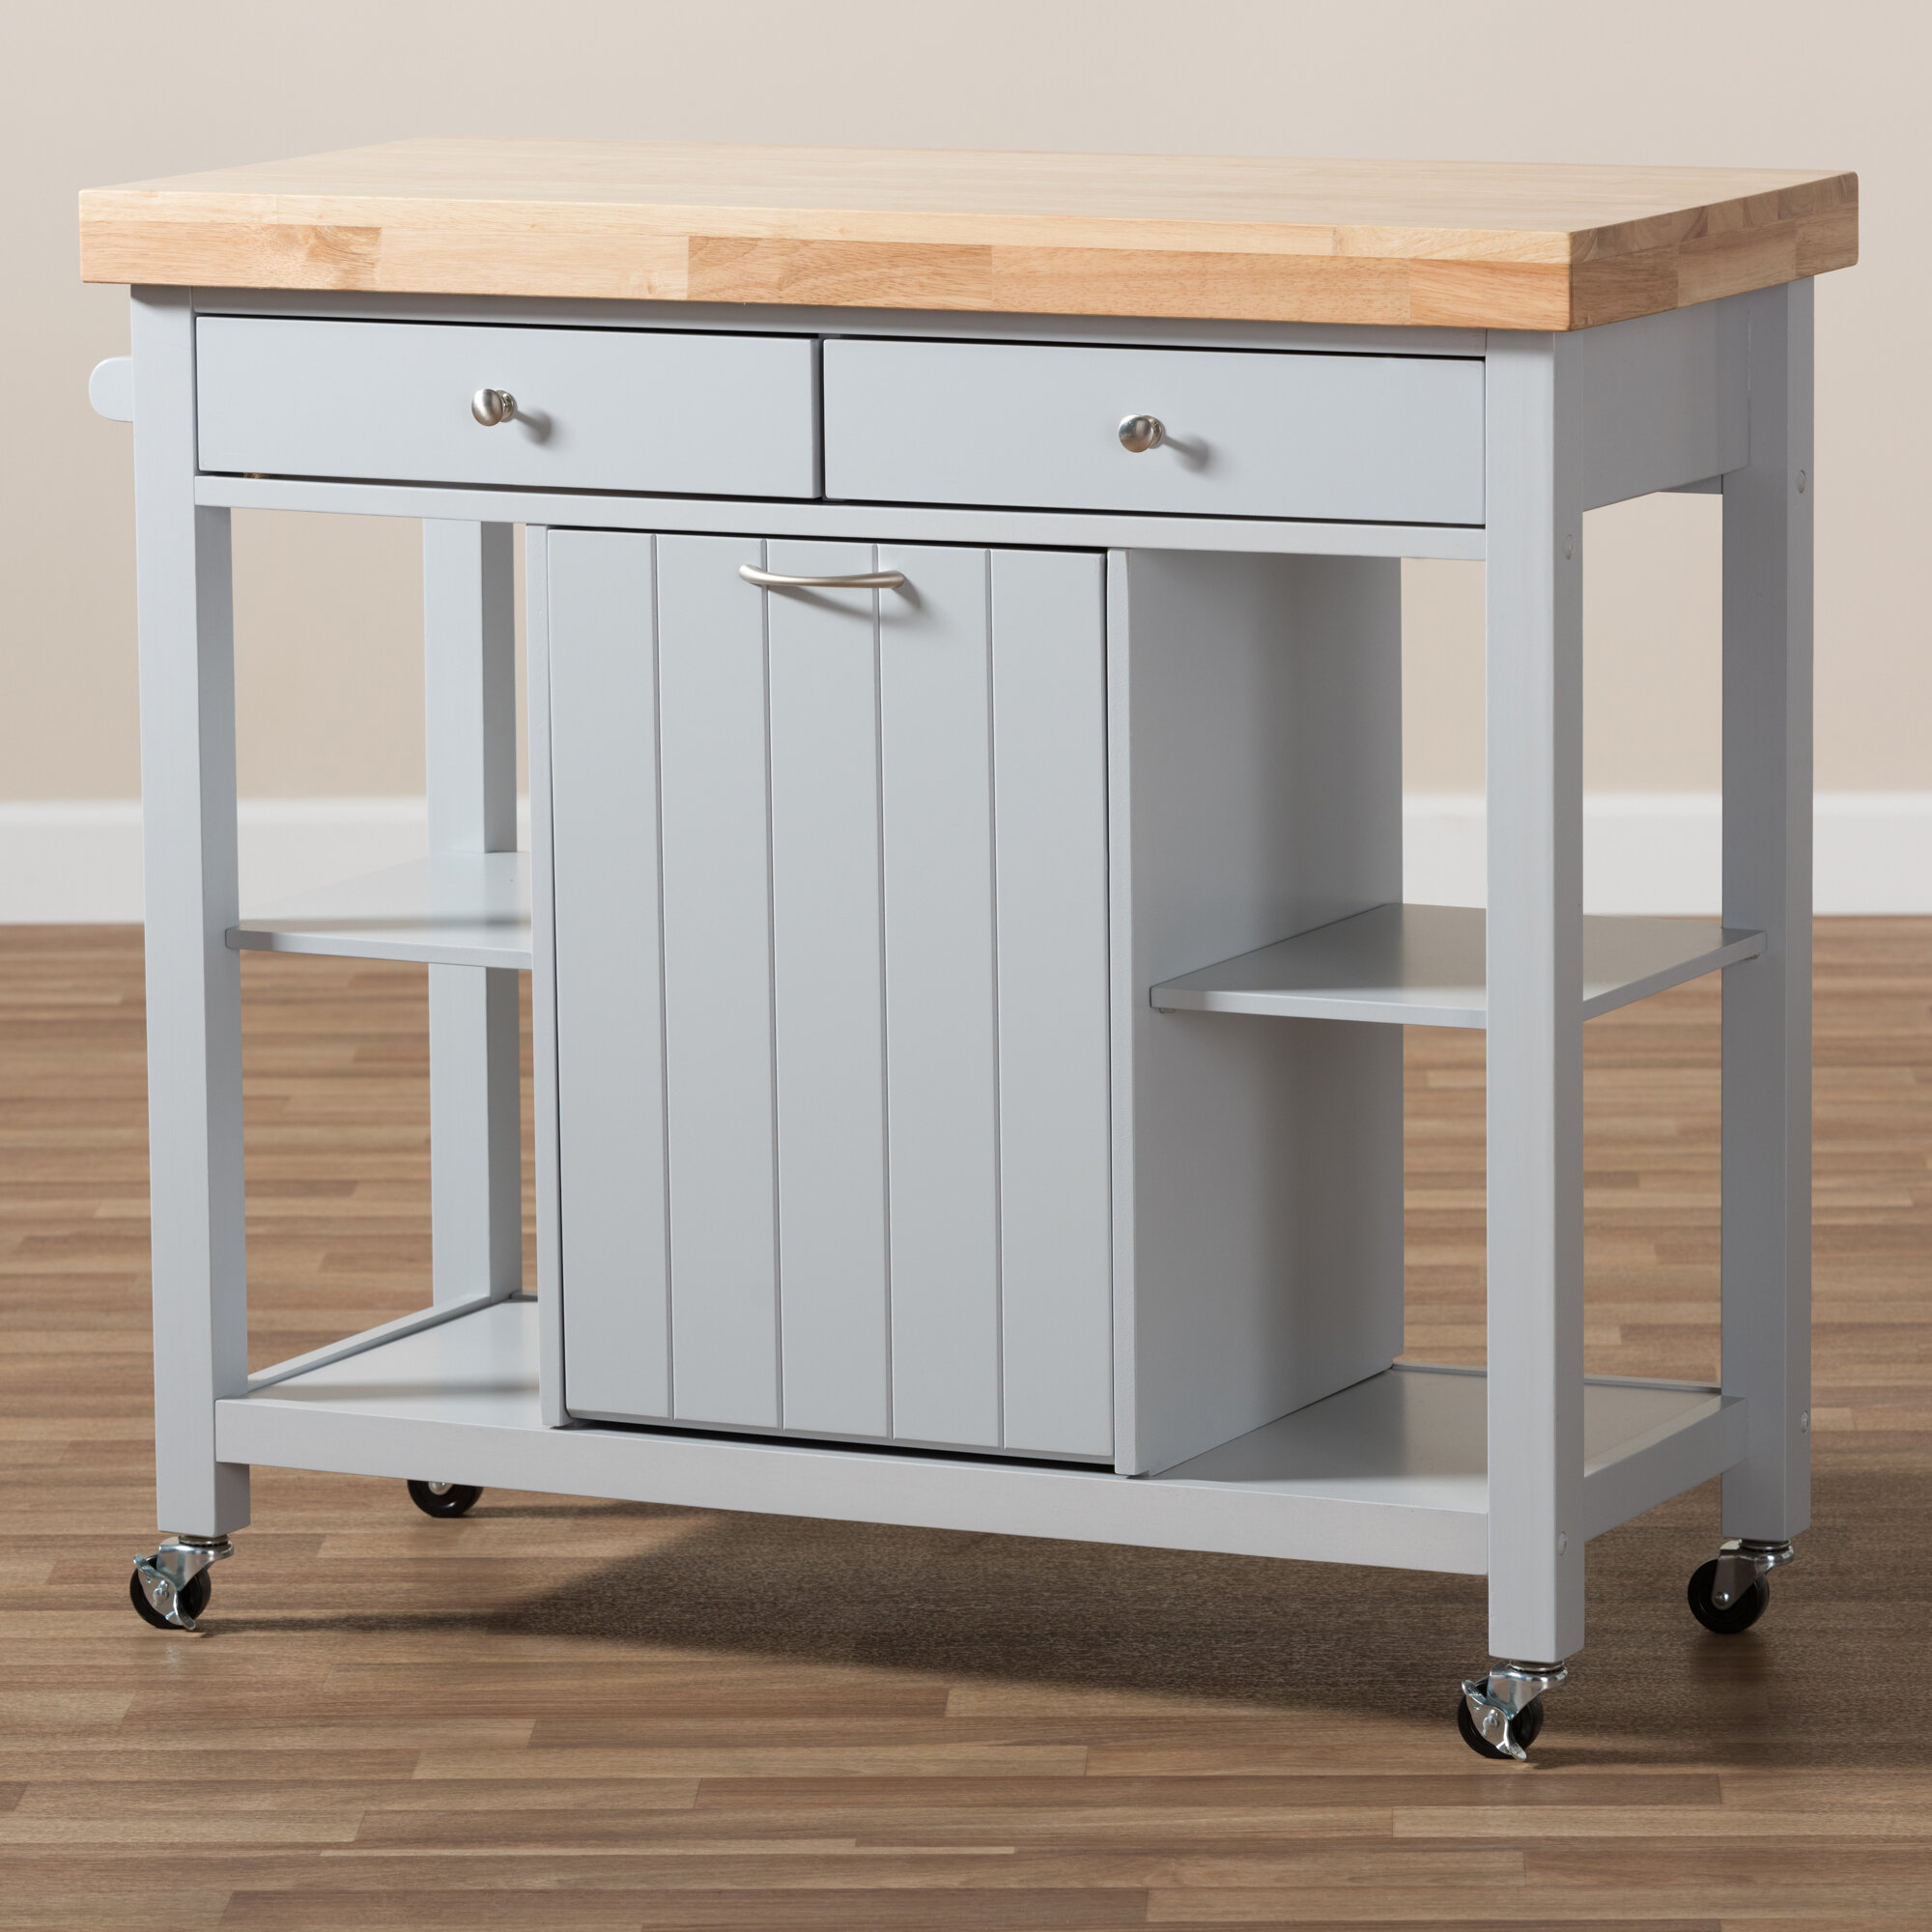 Gracie Oaks Witkowski Homer Kitchen Cart with Wood Top & Reviews ...